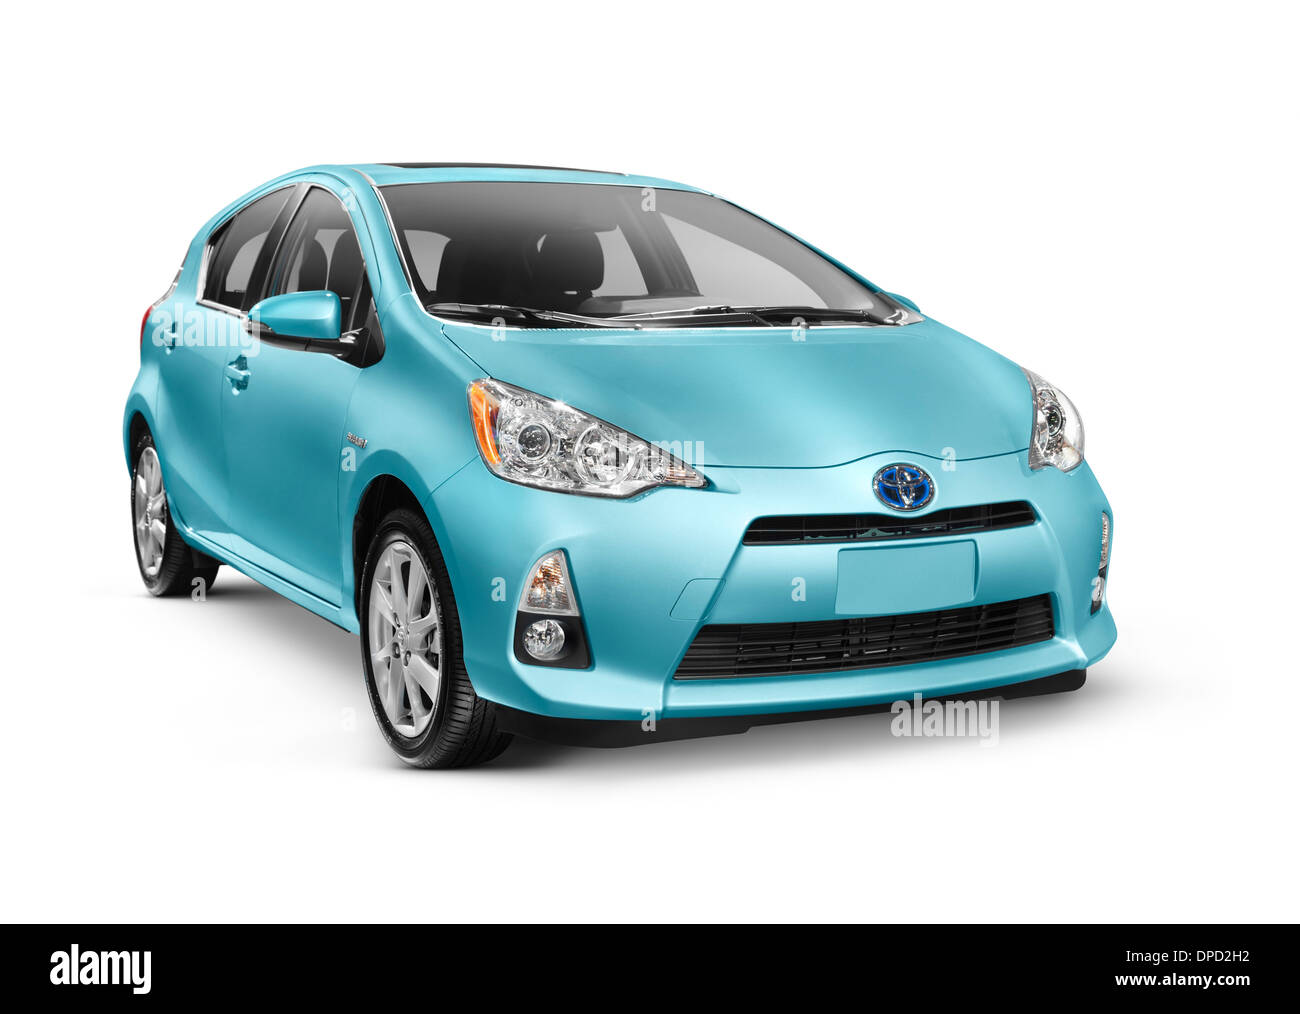 Blue 2013 Toyota Prius C mid-size hybrid car isolated on white background with clipping path - Stock Image